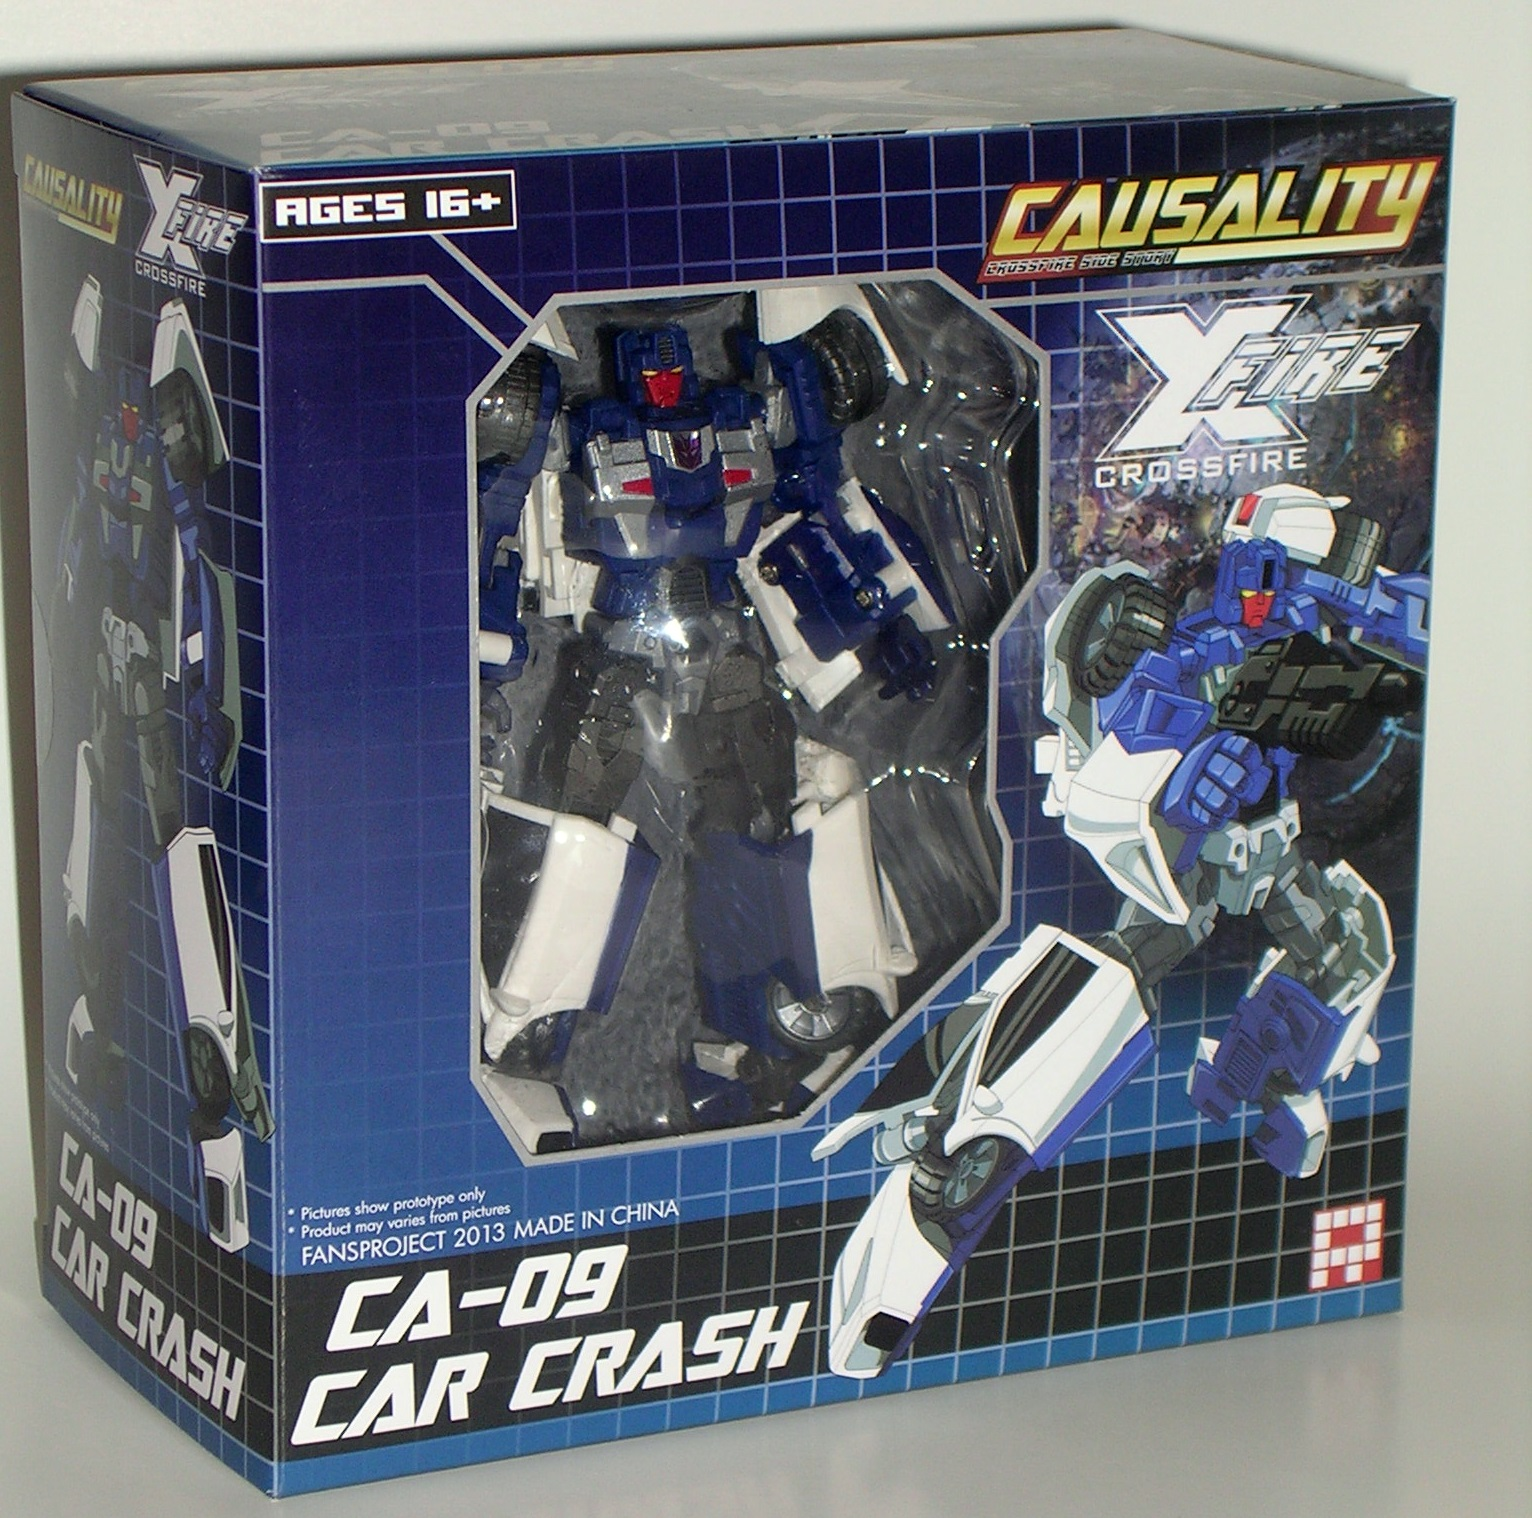 Causality: CA-09 Car Crash By Fansproject